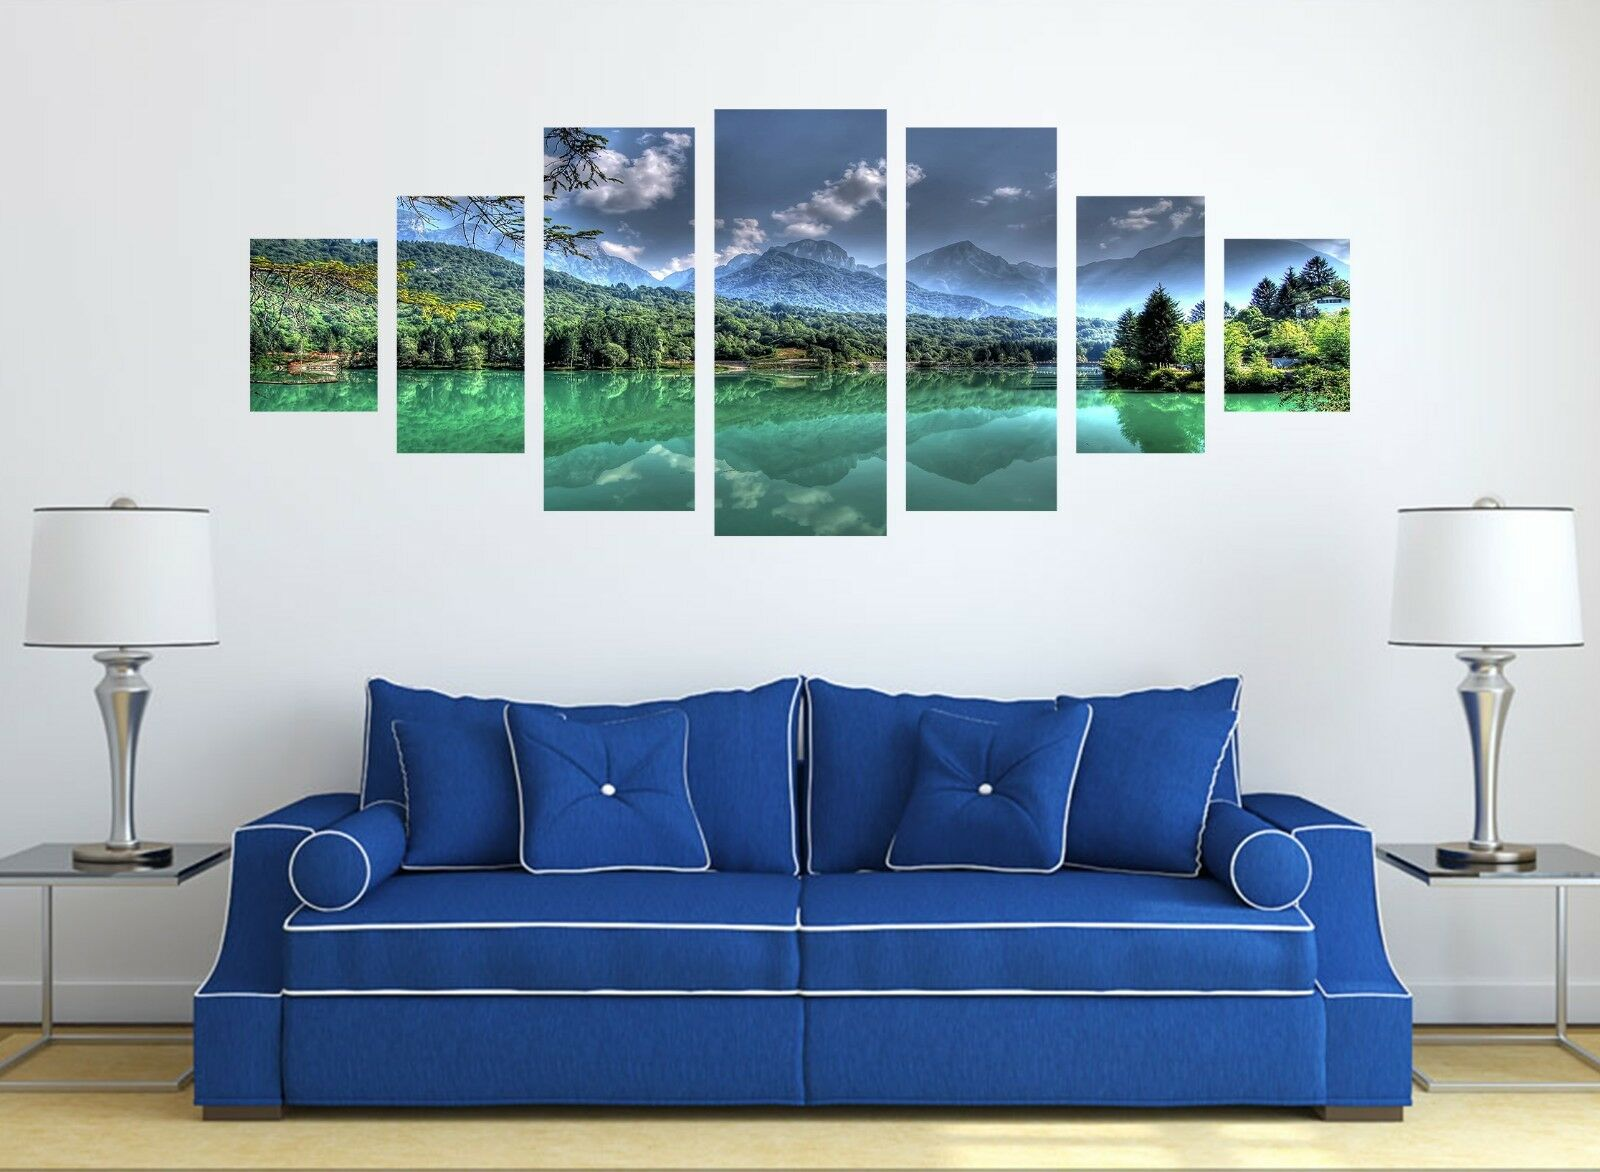 3D Landscape 56 Unframed Print Wall Paper Decal Wall Deco Indoor AJ Wall